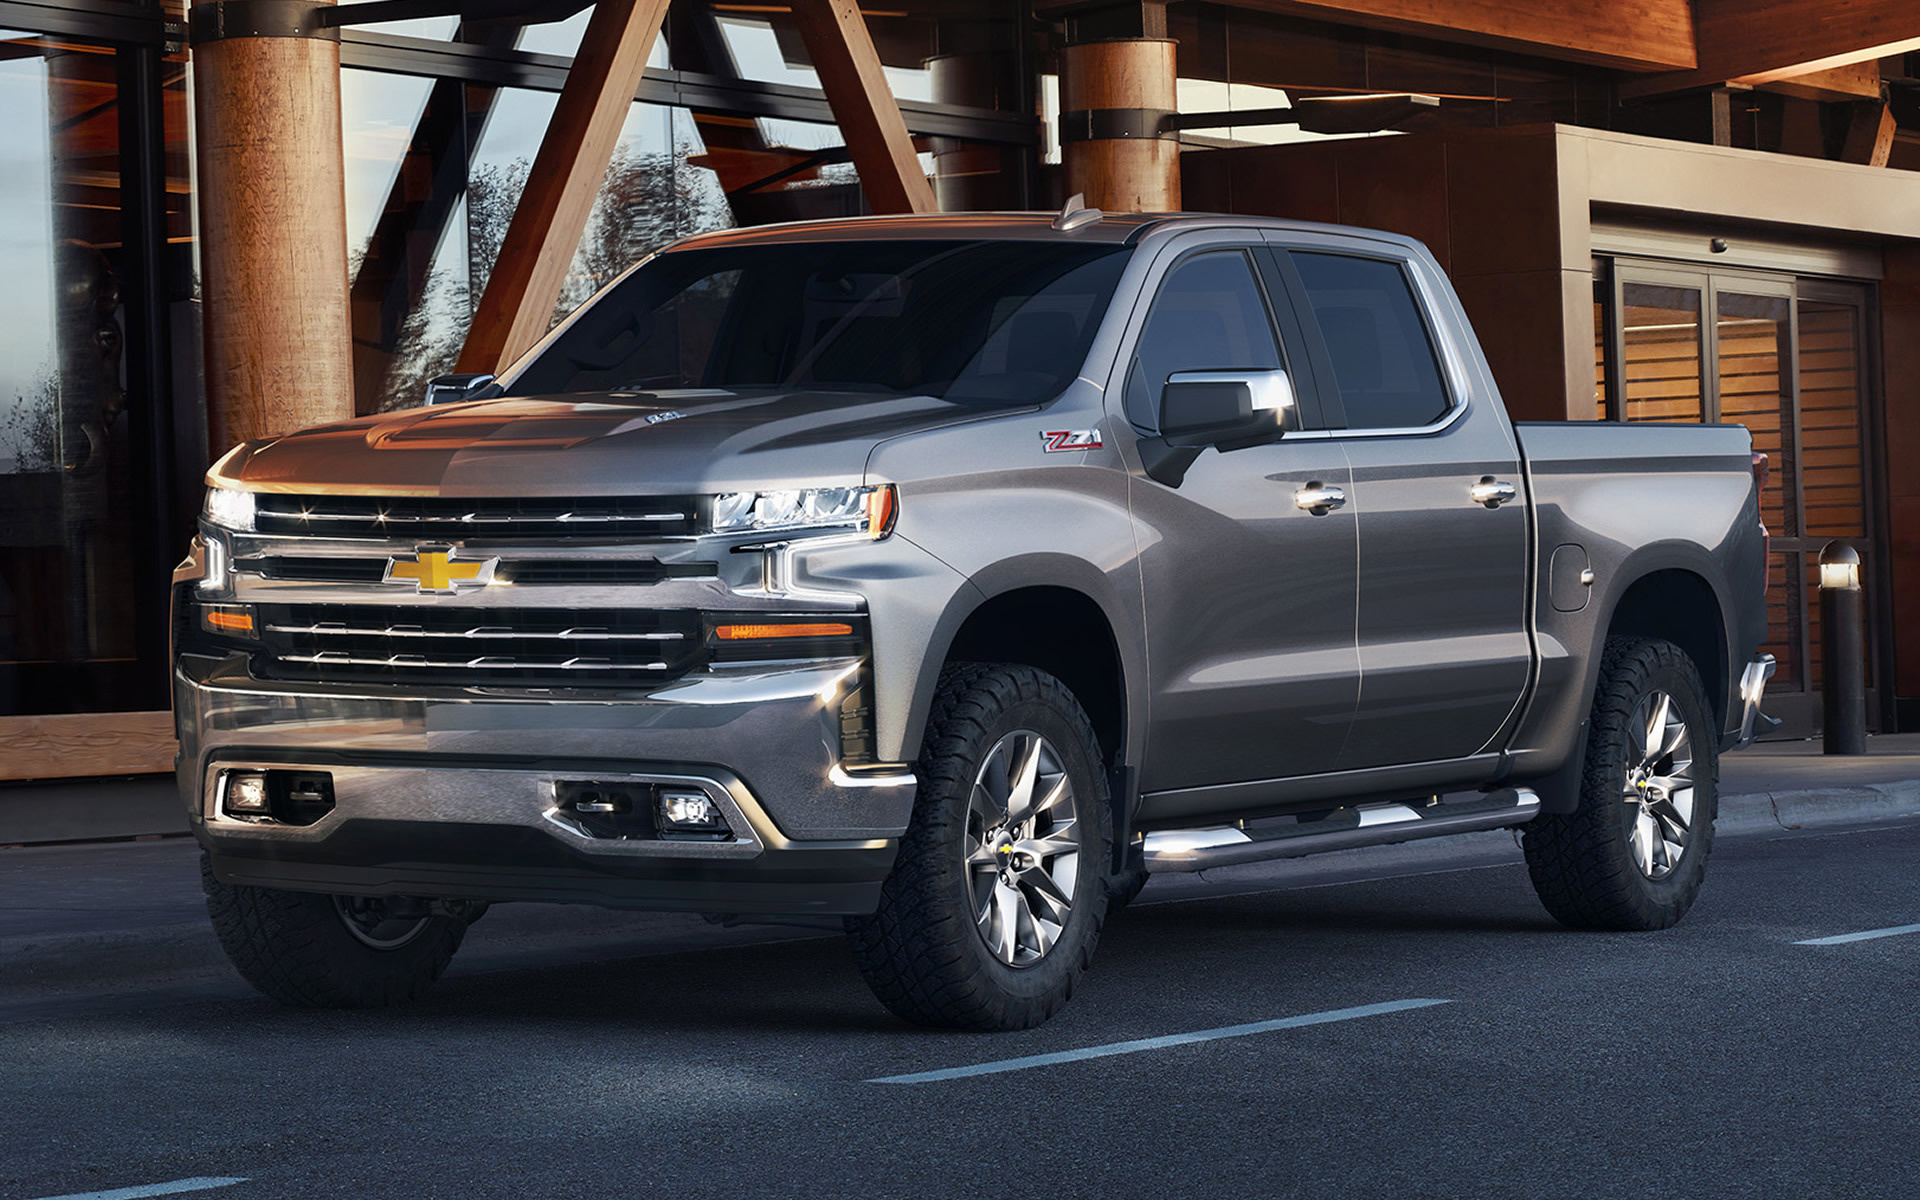 2019 Chevrolet Silverado Z71 Crew Cab - Wallpapers and HD ...